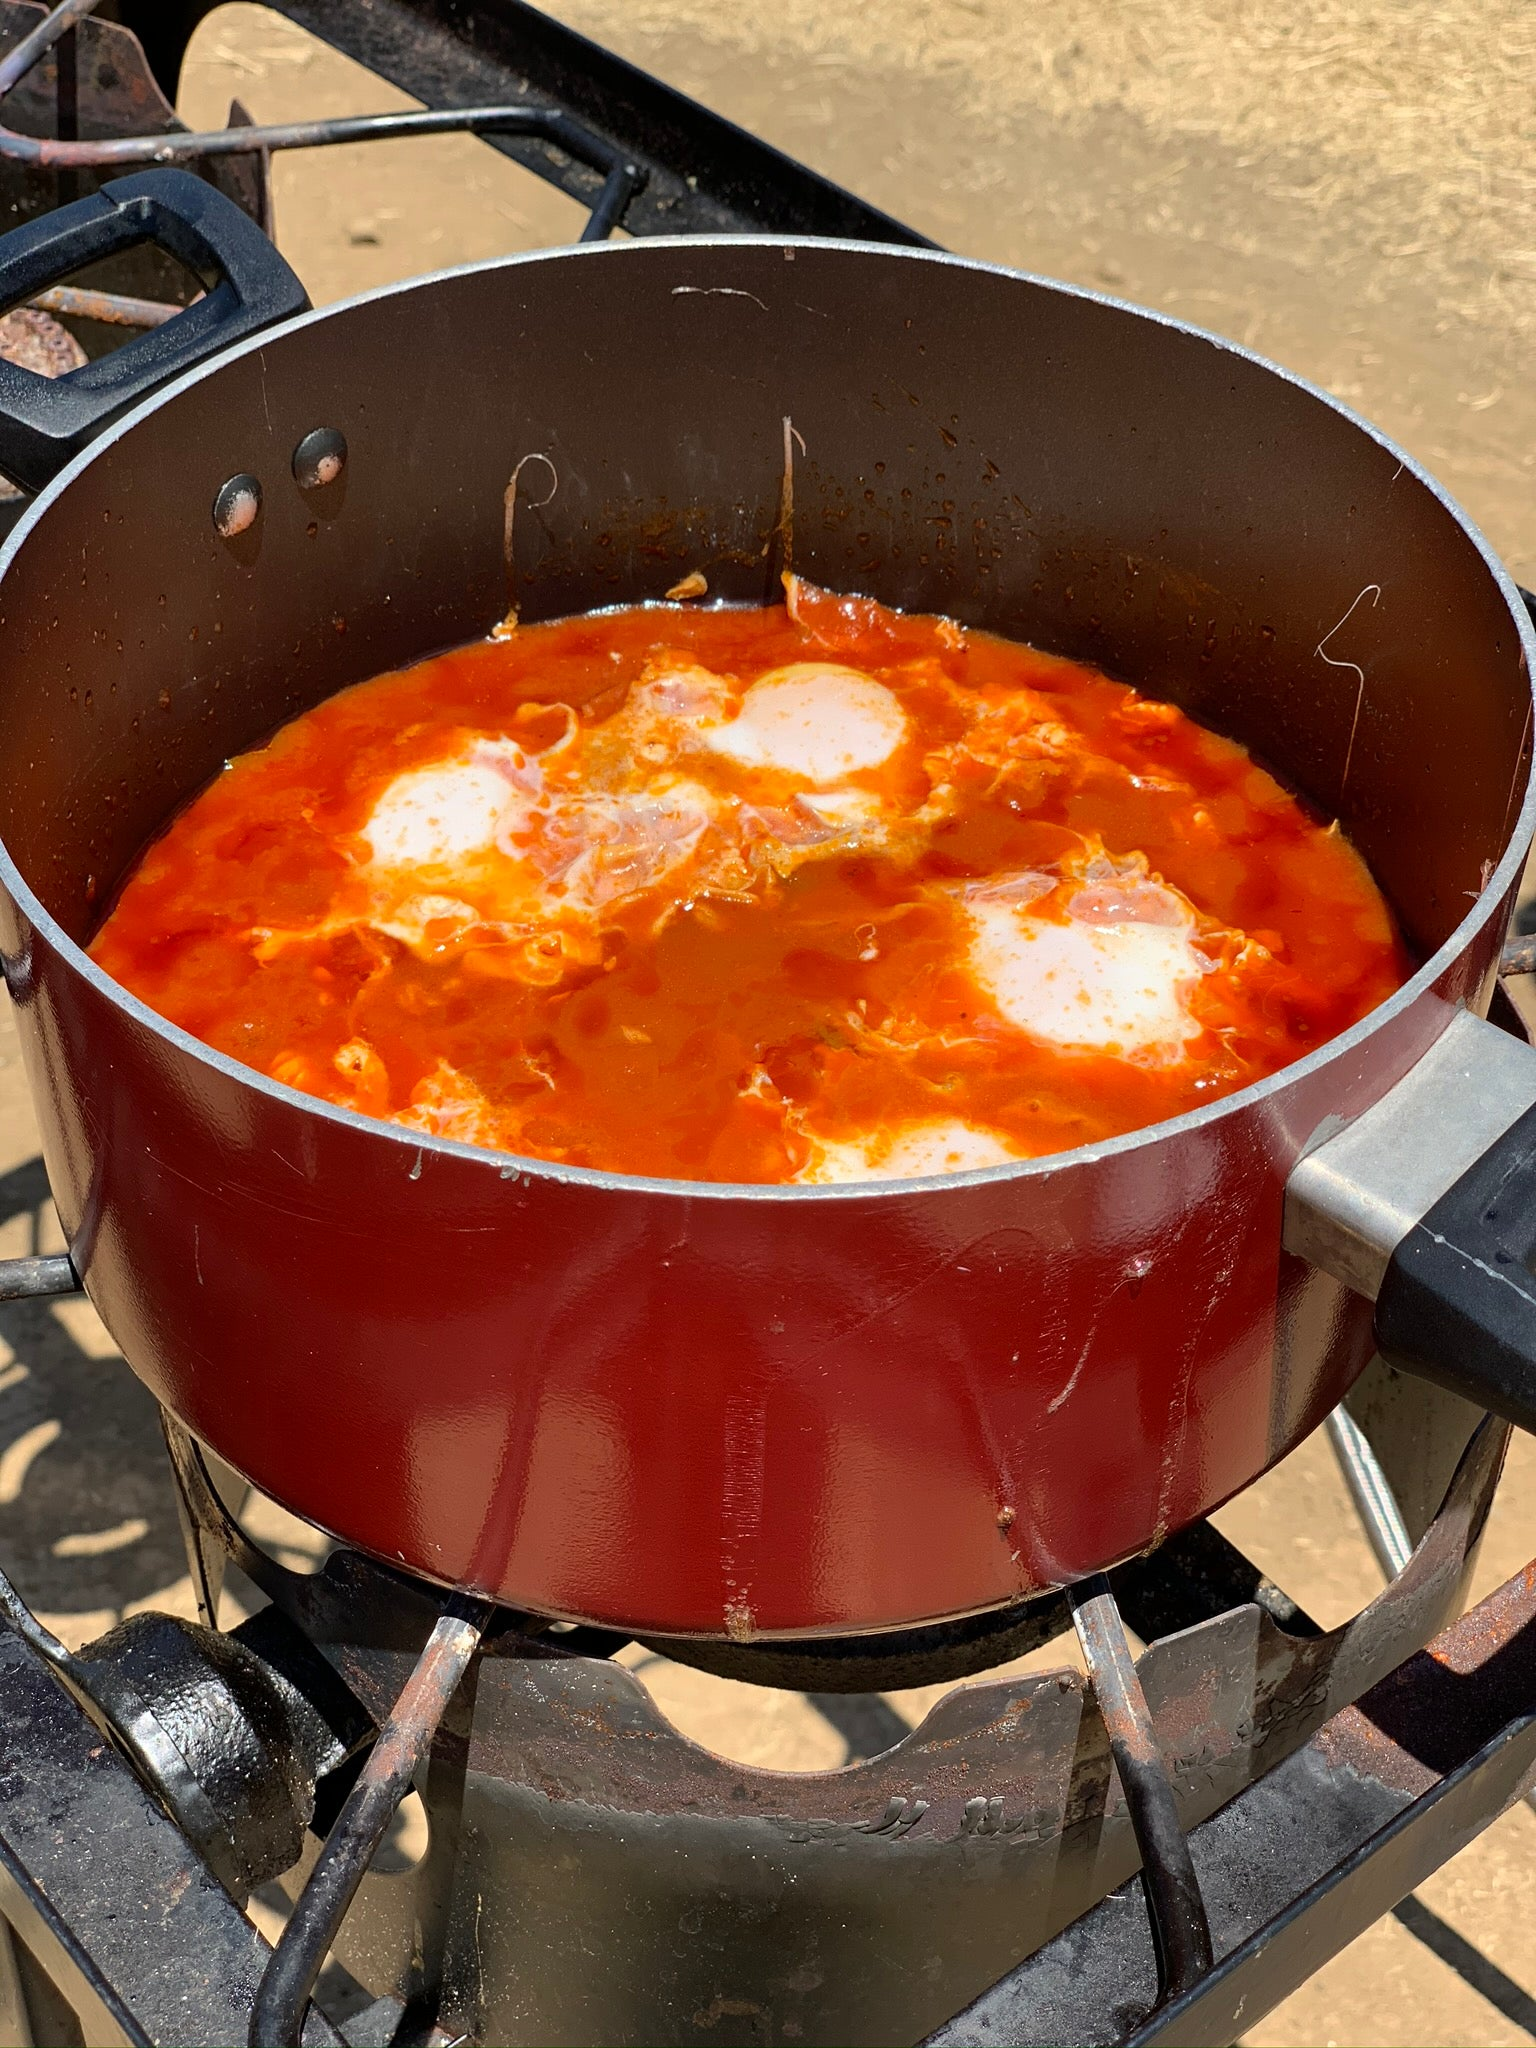 Shakshuka cooking on a stove in a cast iron pan